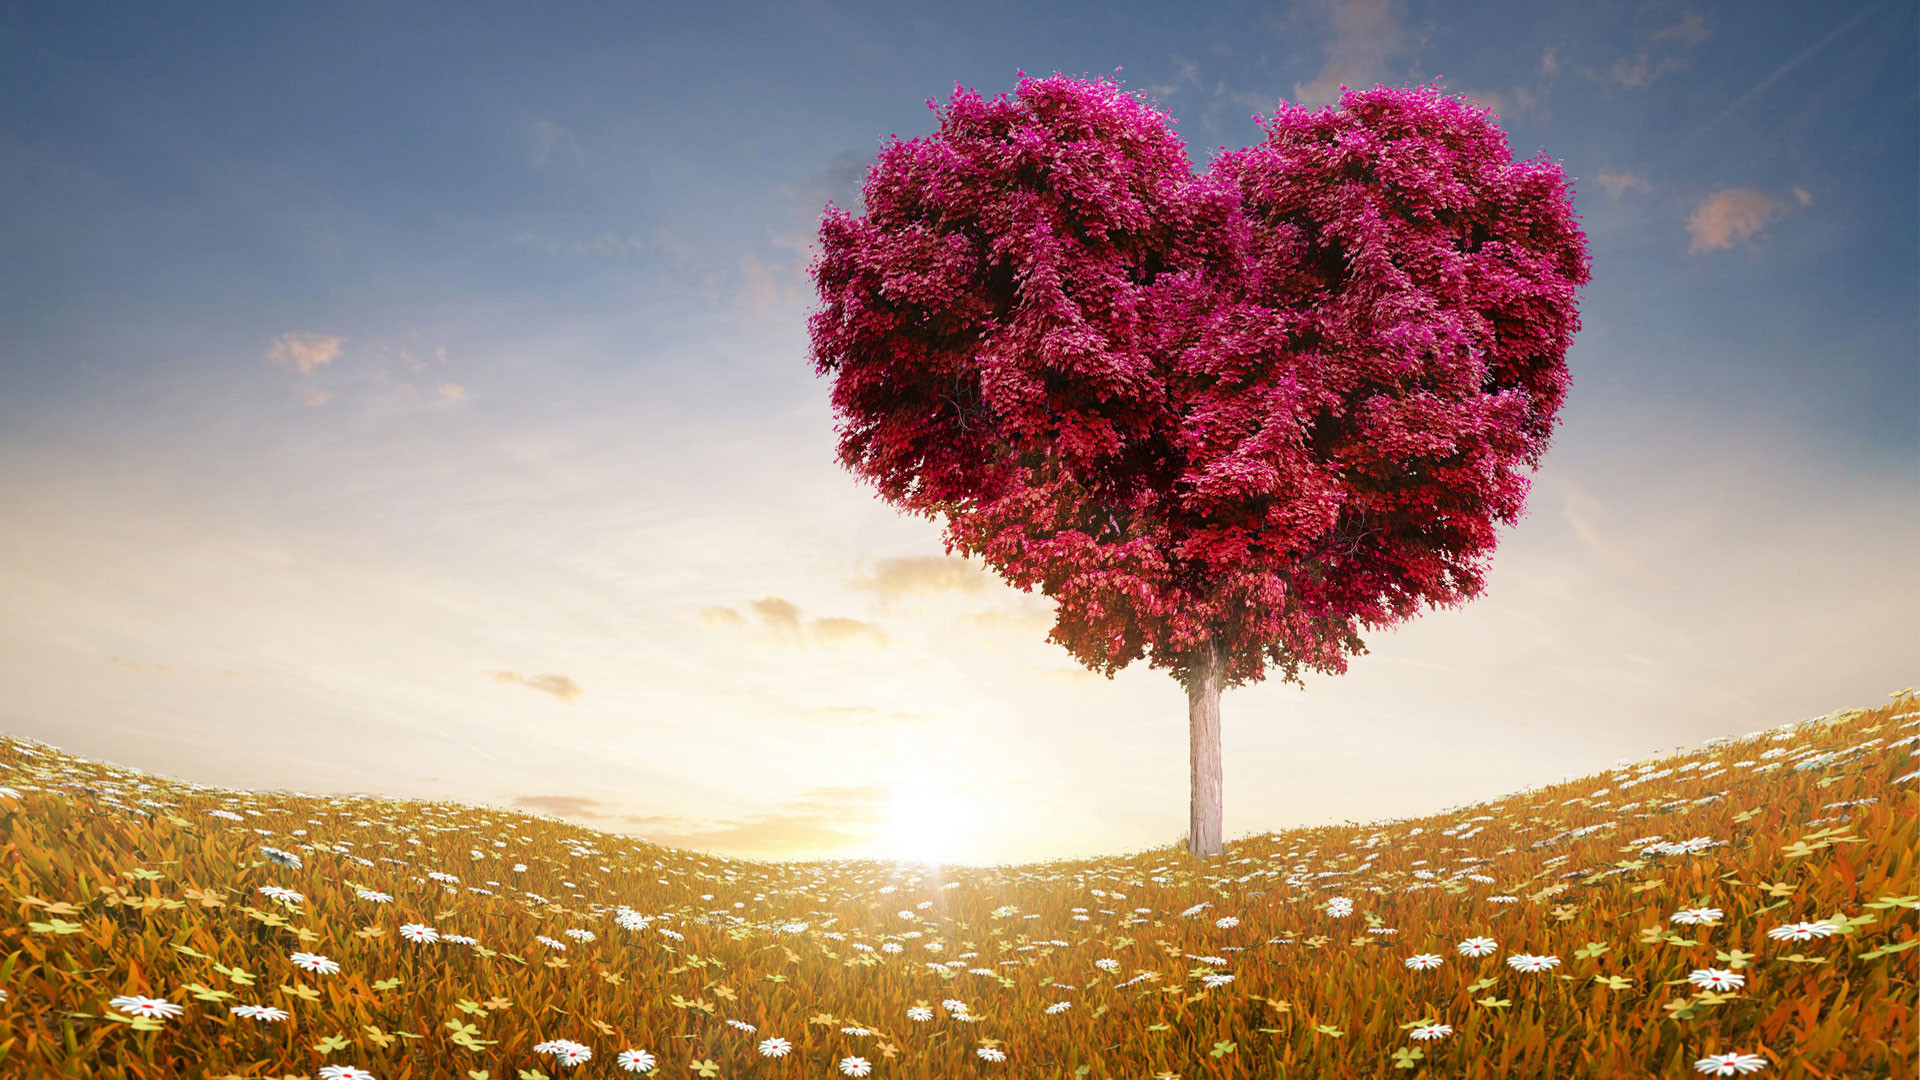 Res: 1920x1080, Wallpaper For Widescreen Love Heart Nature Tree Leaves Desktop  Backgroundwith Hd 1080p